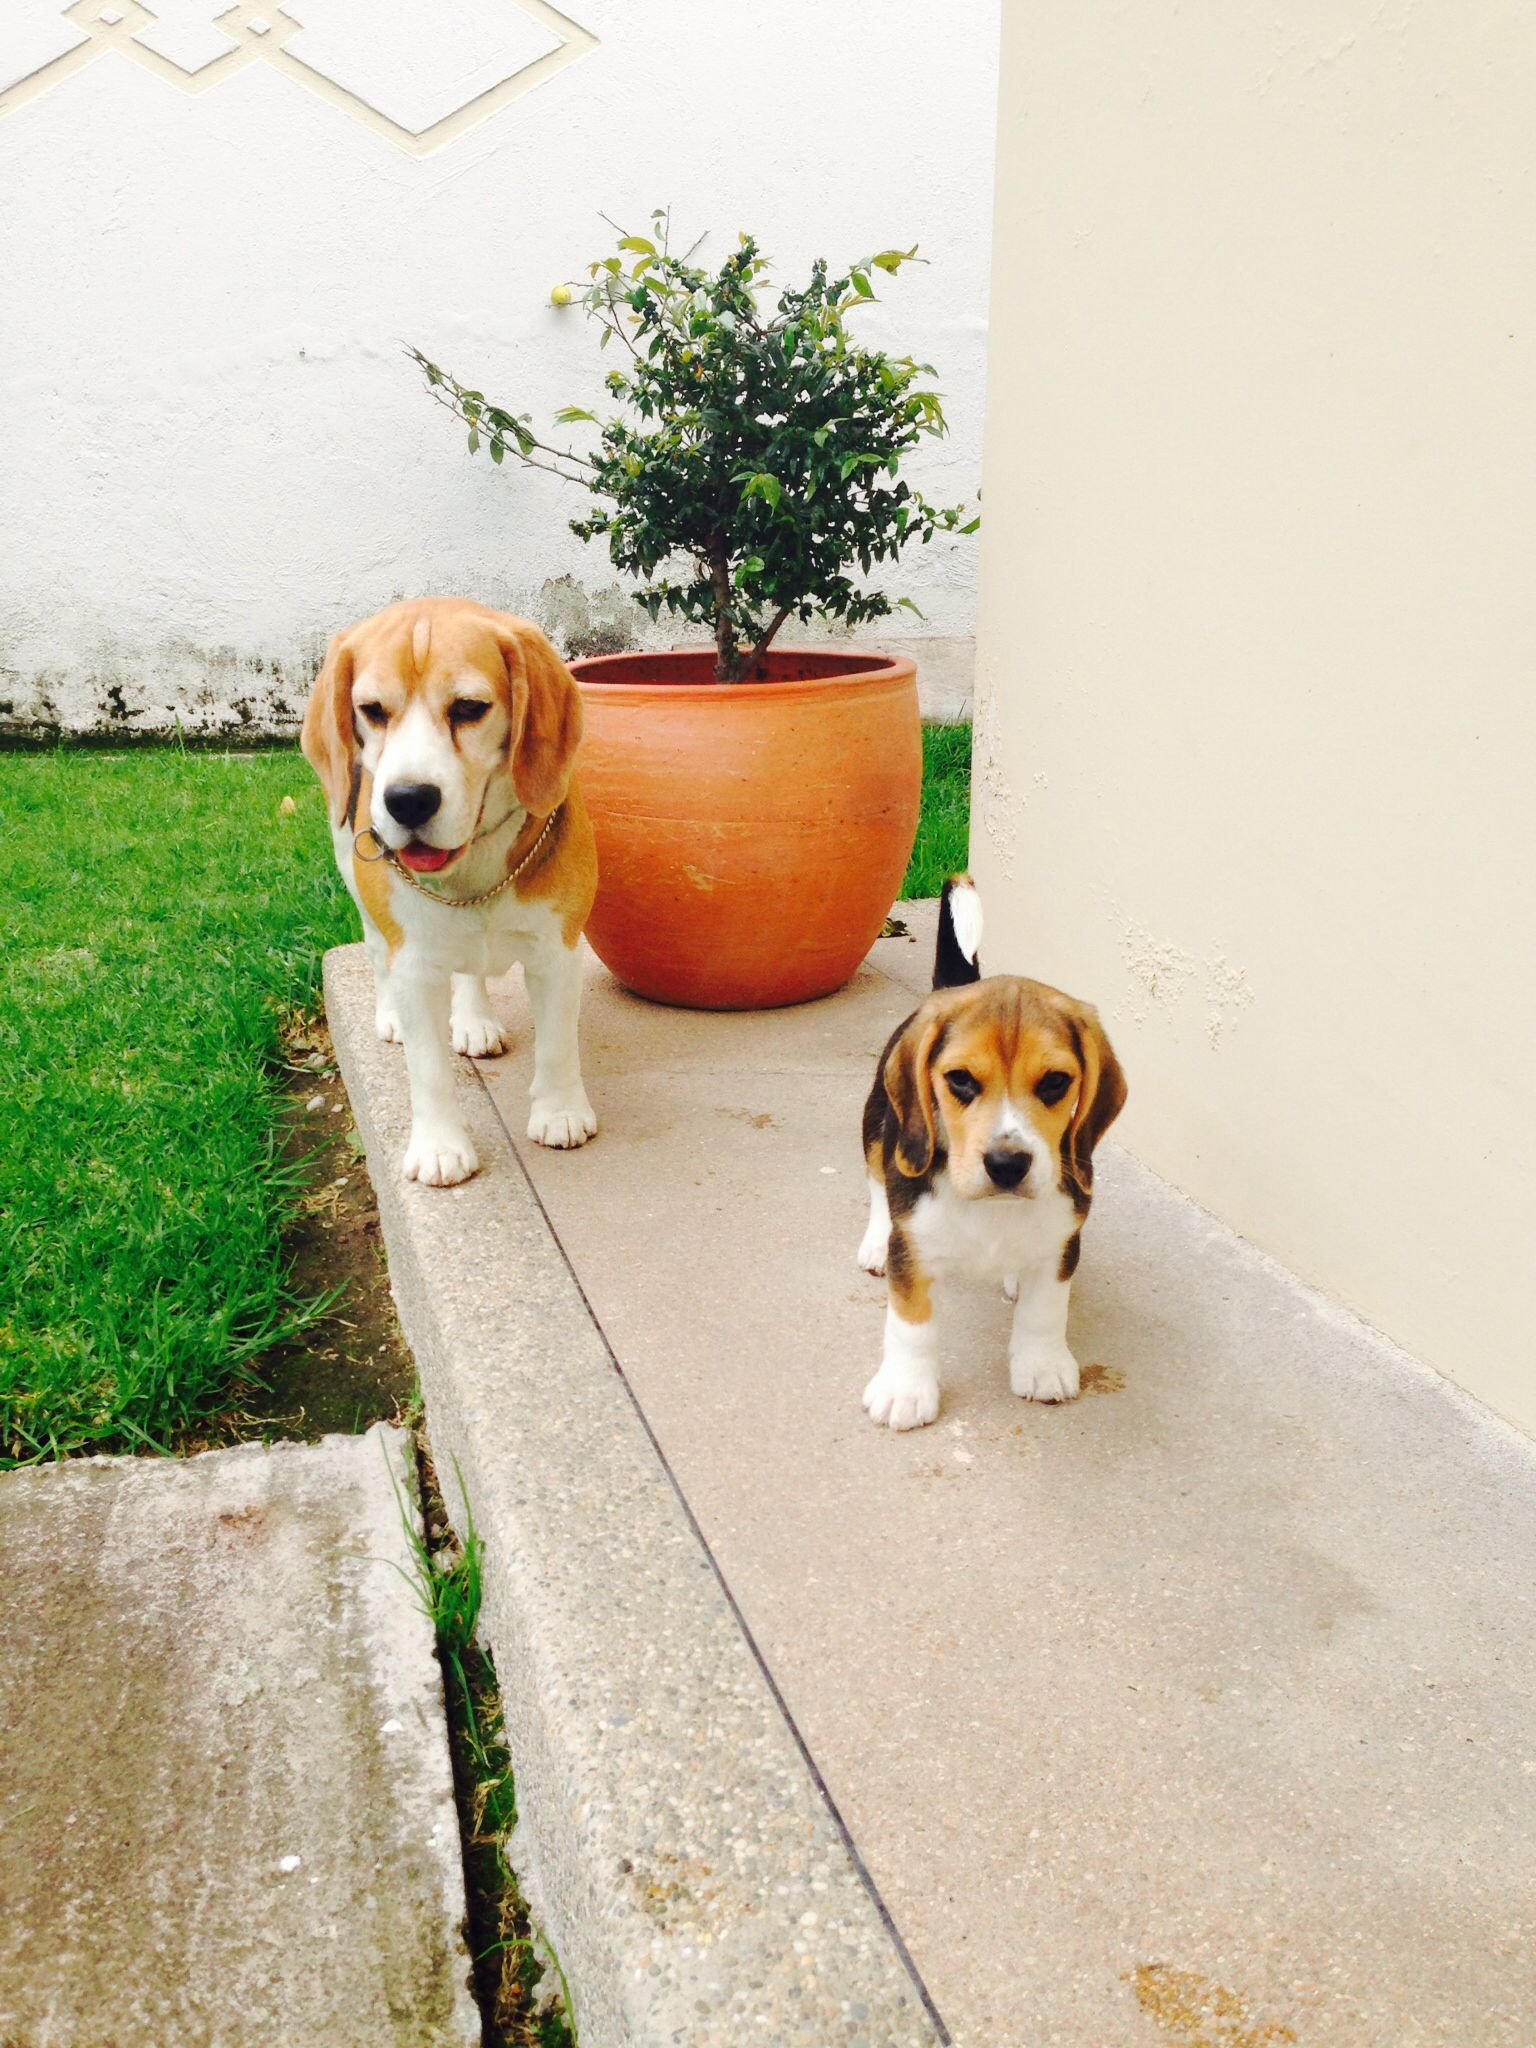 Beagles They Are So Cute Beagle Training Your Dog Easiest